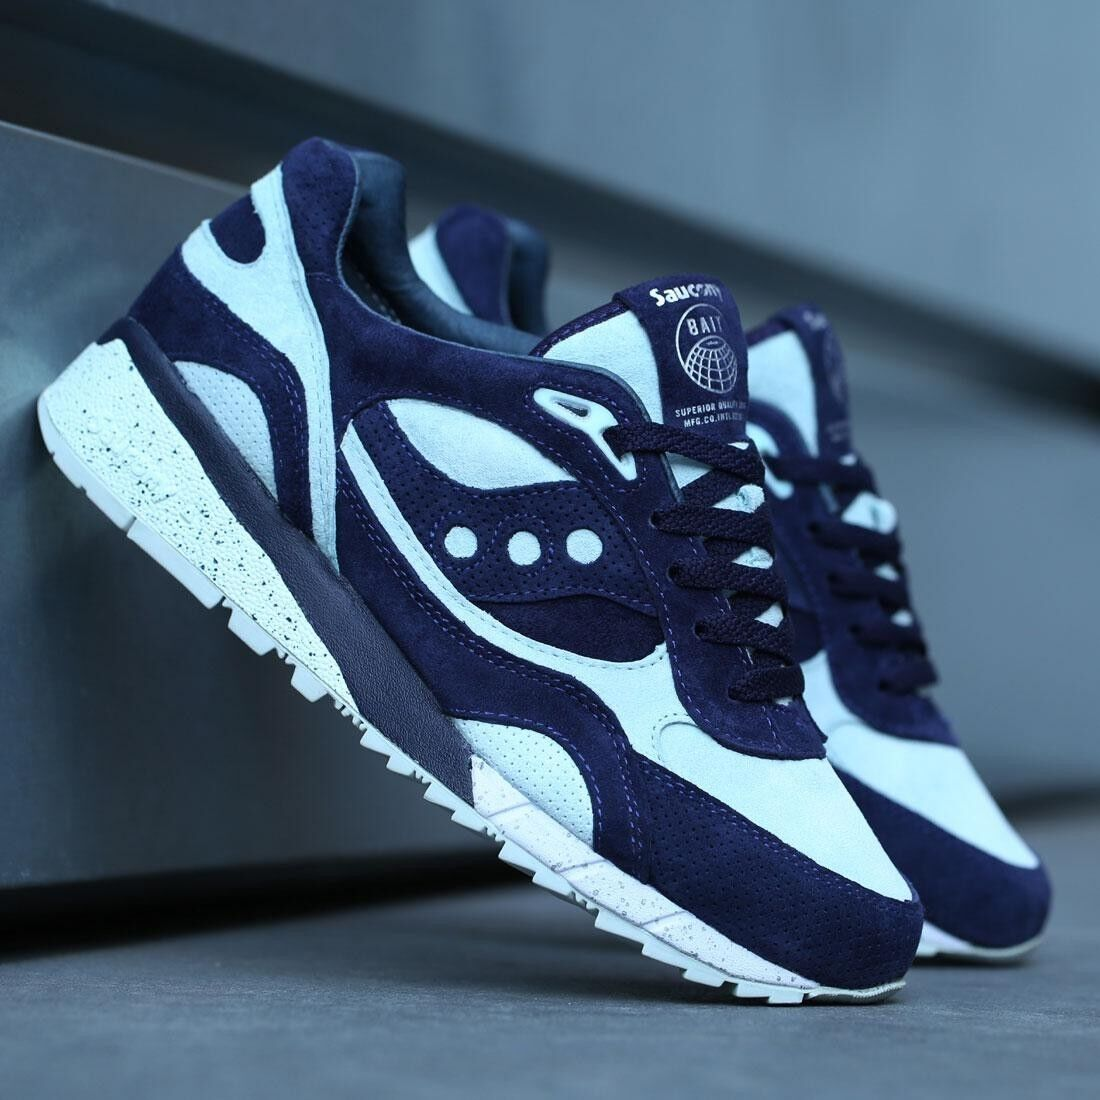 10.0 10.0 10.0 BAIT x Saucony Shadow 6000 CruelWorld 5 - New World Water 807b20